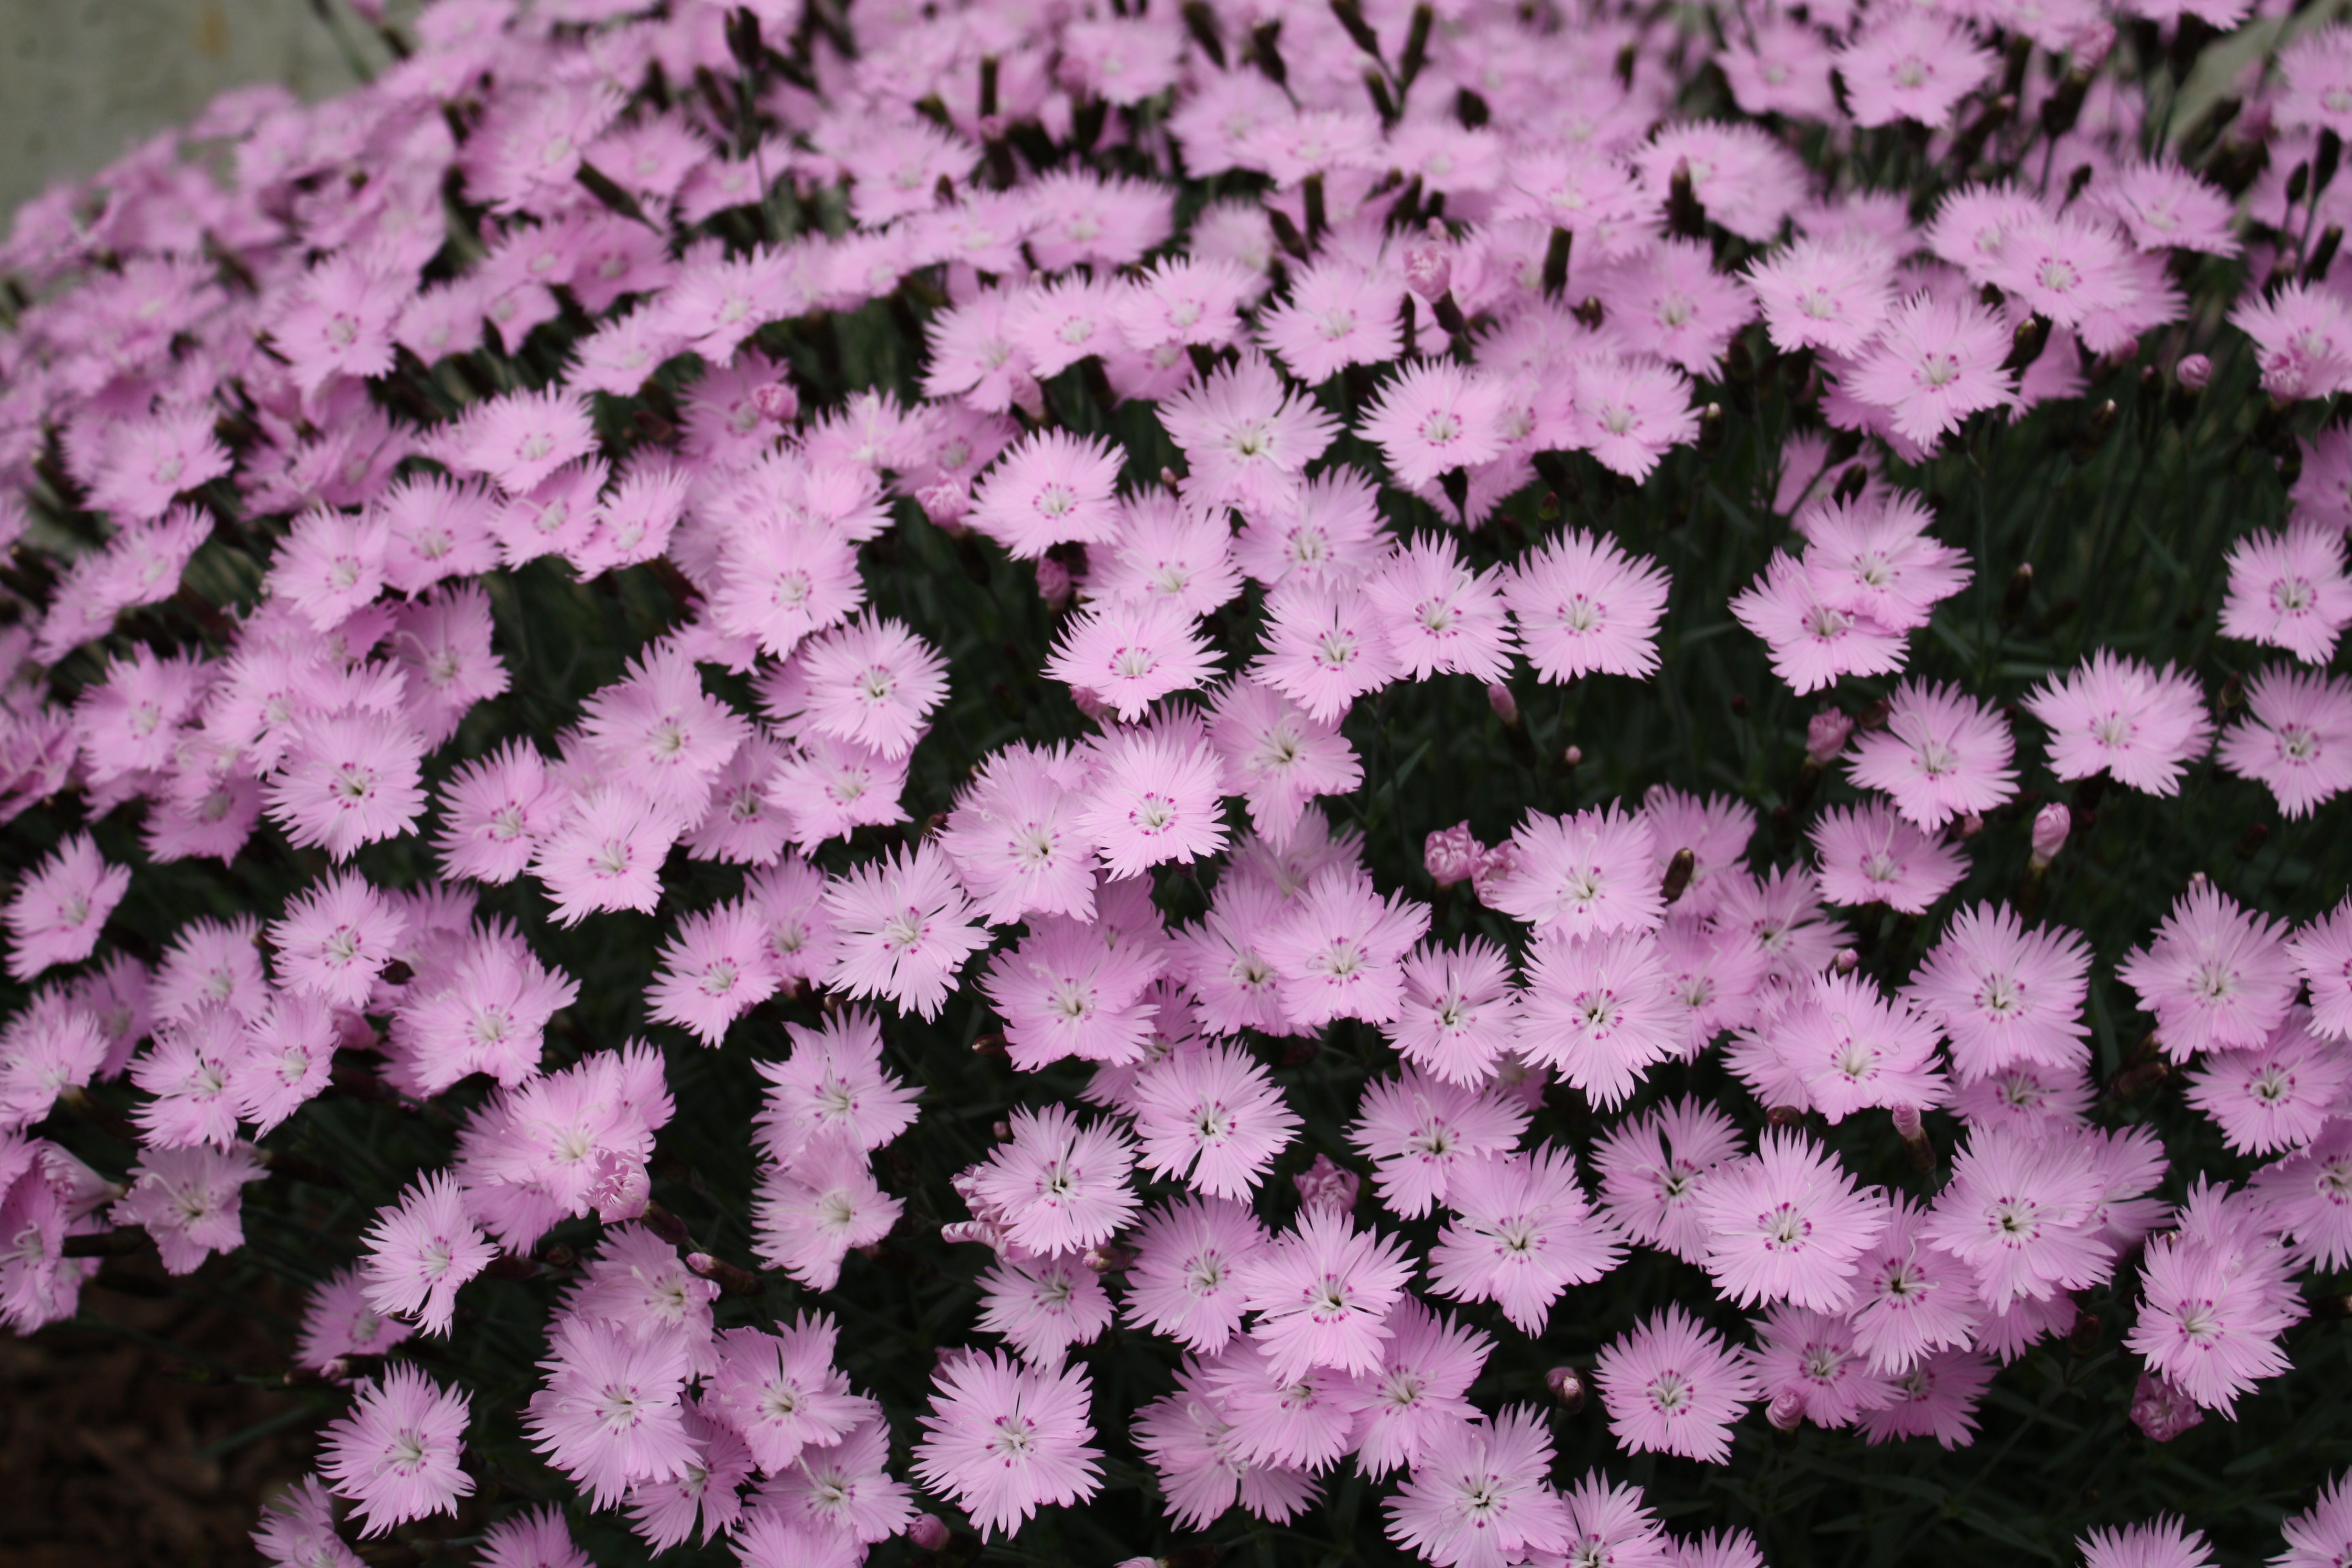 http://upload.wikimedia.org/wikipedia/commons/d/d4/Dianthus_Baths_Pink_08.jpg